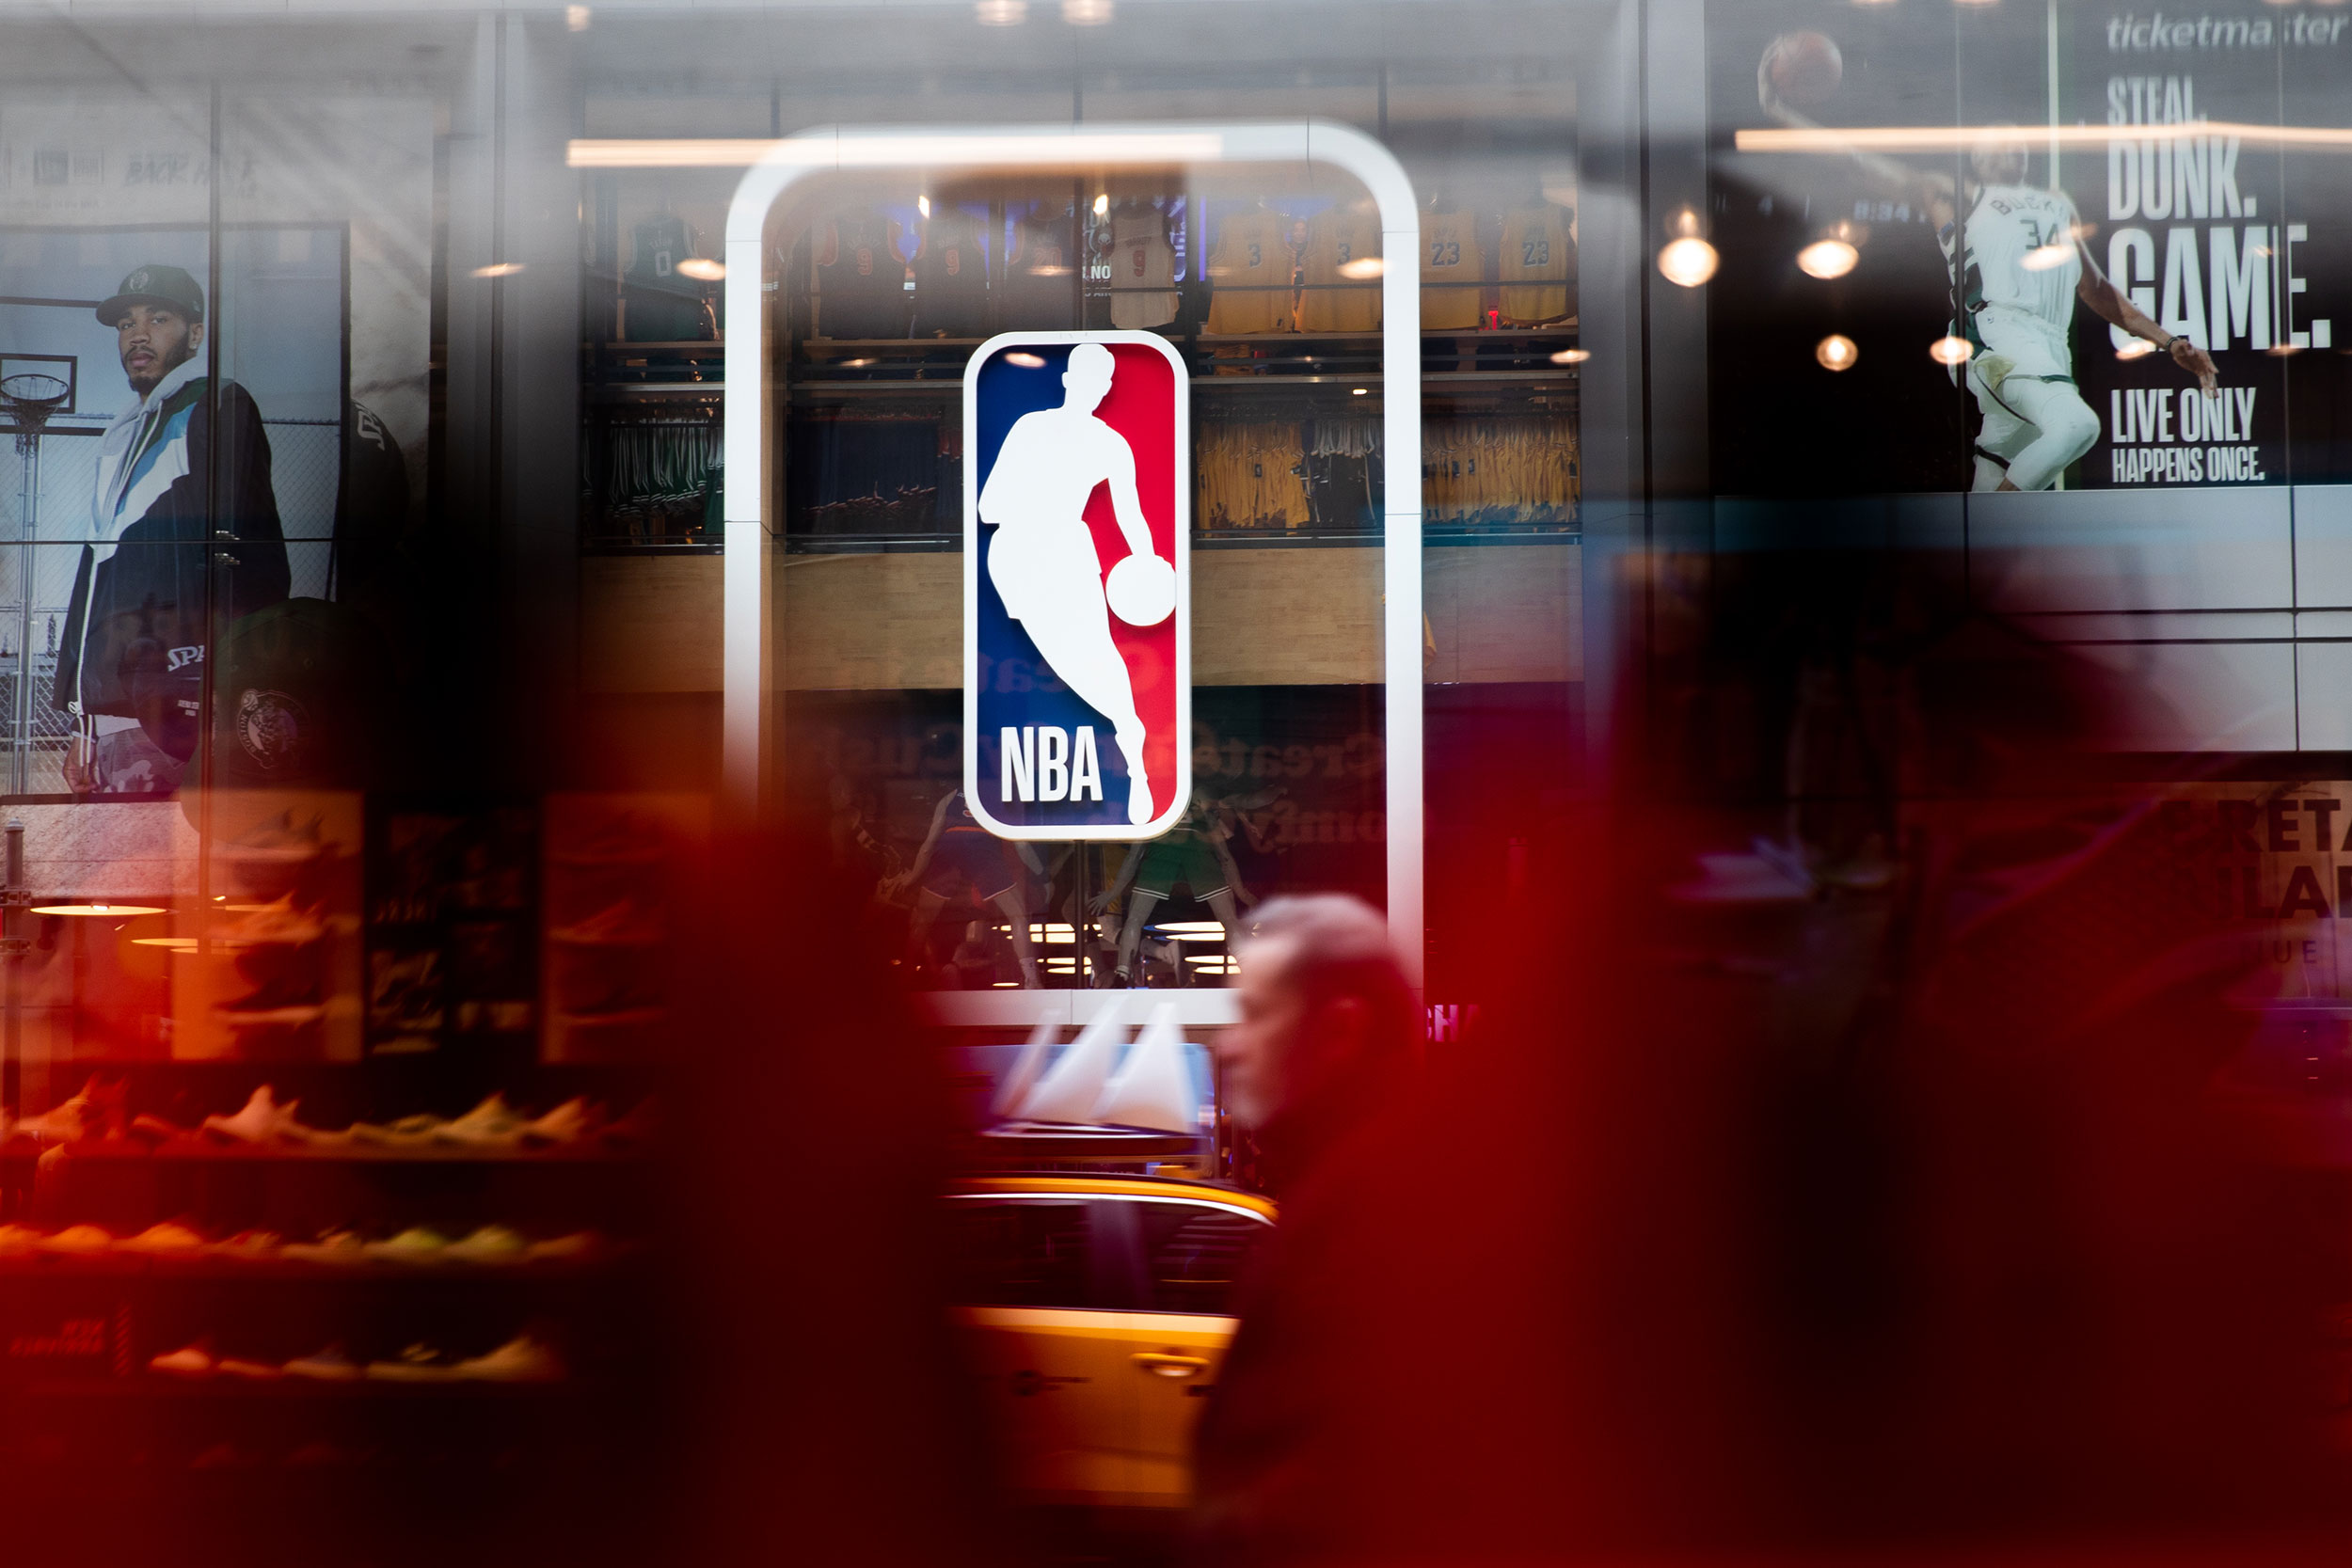 An NBA logo is shown at the 5th Avenue NBA store on March 12 in New York City.